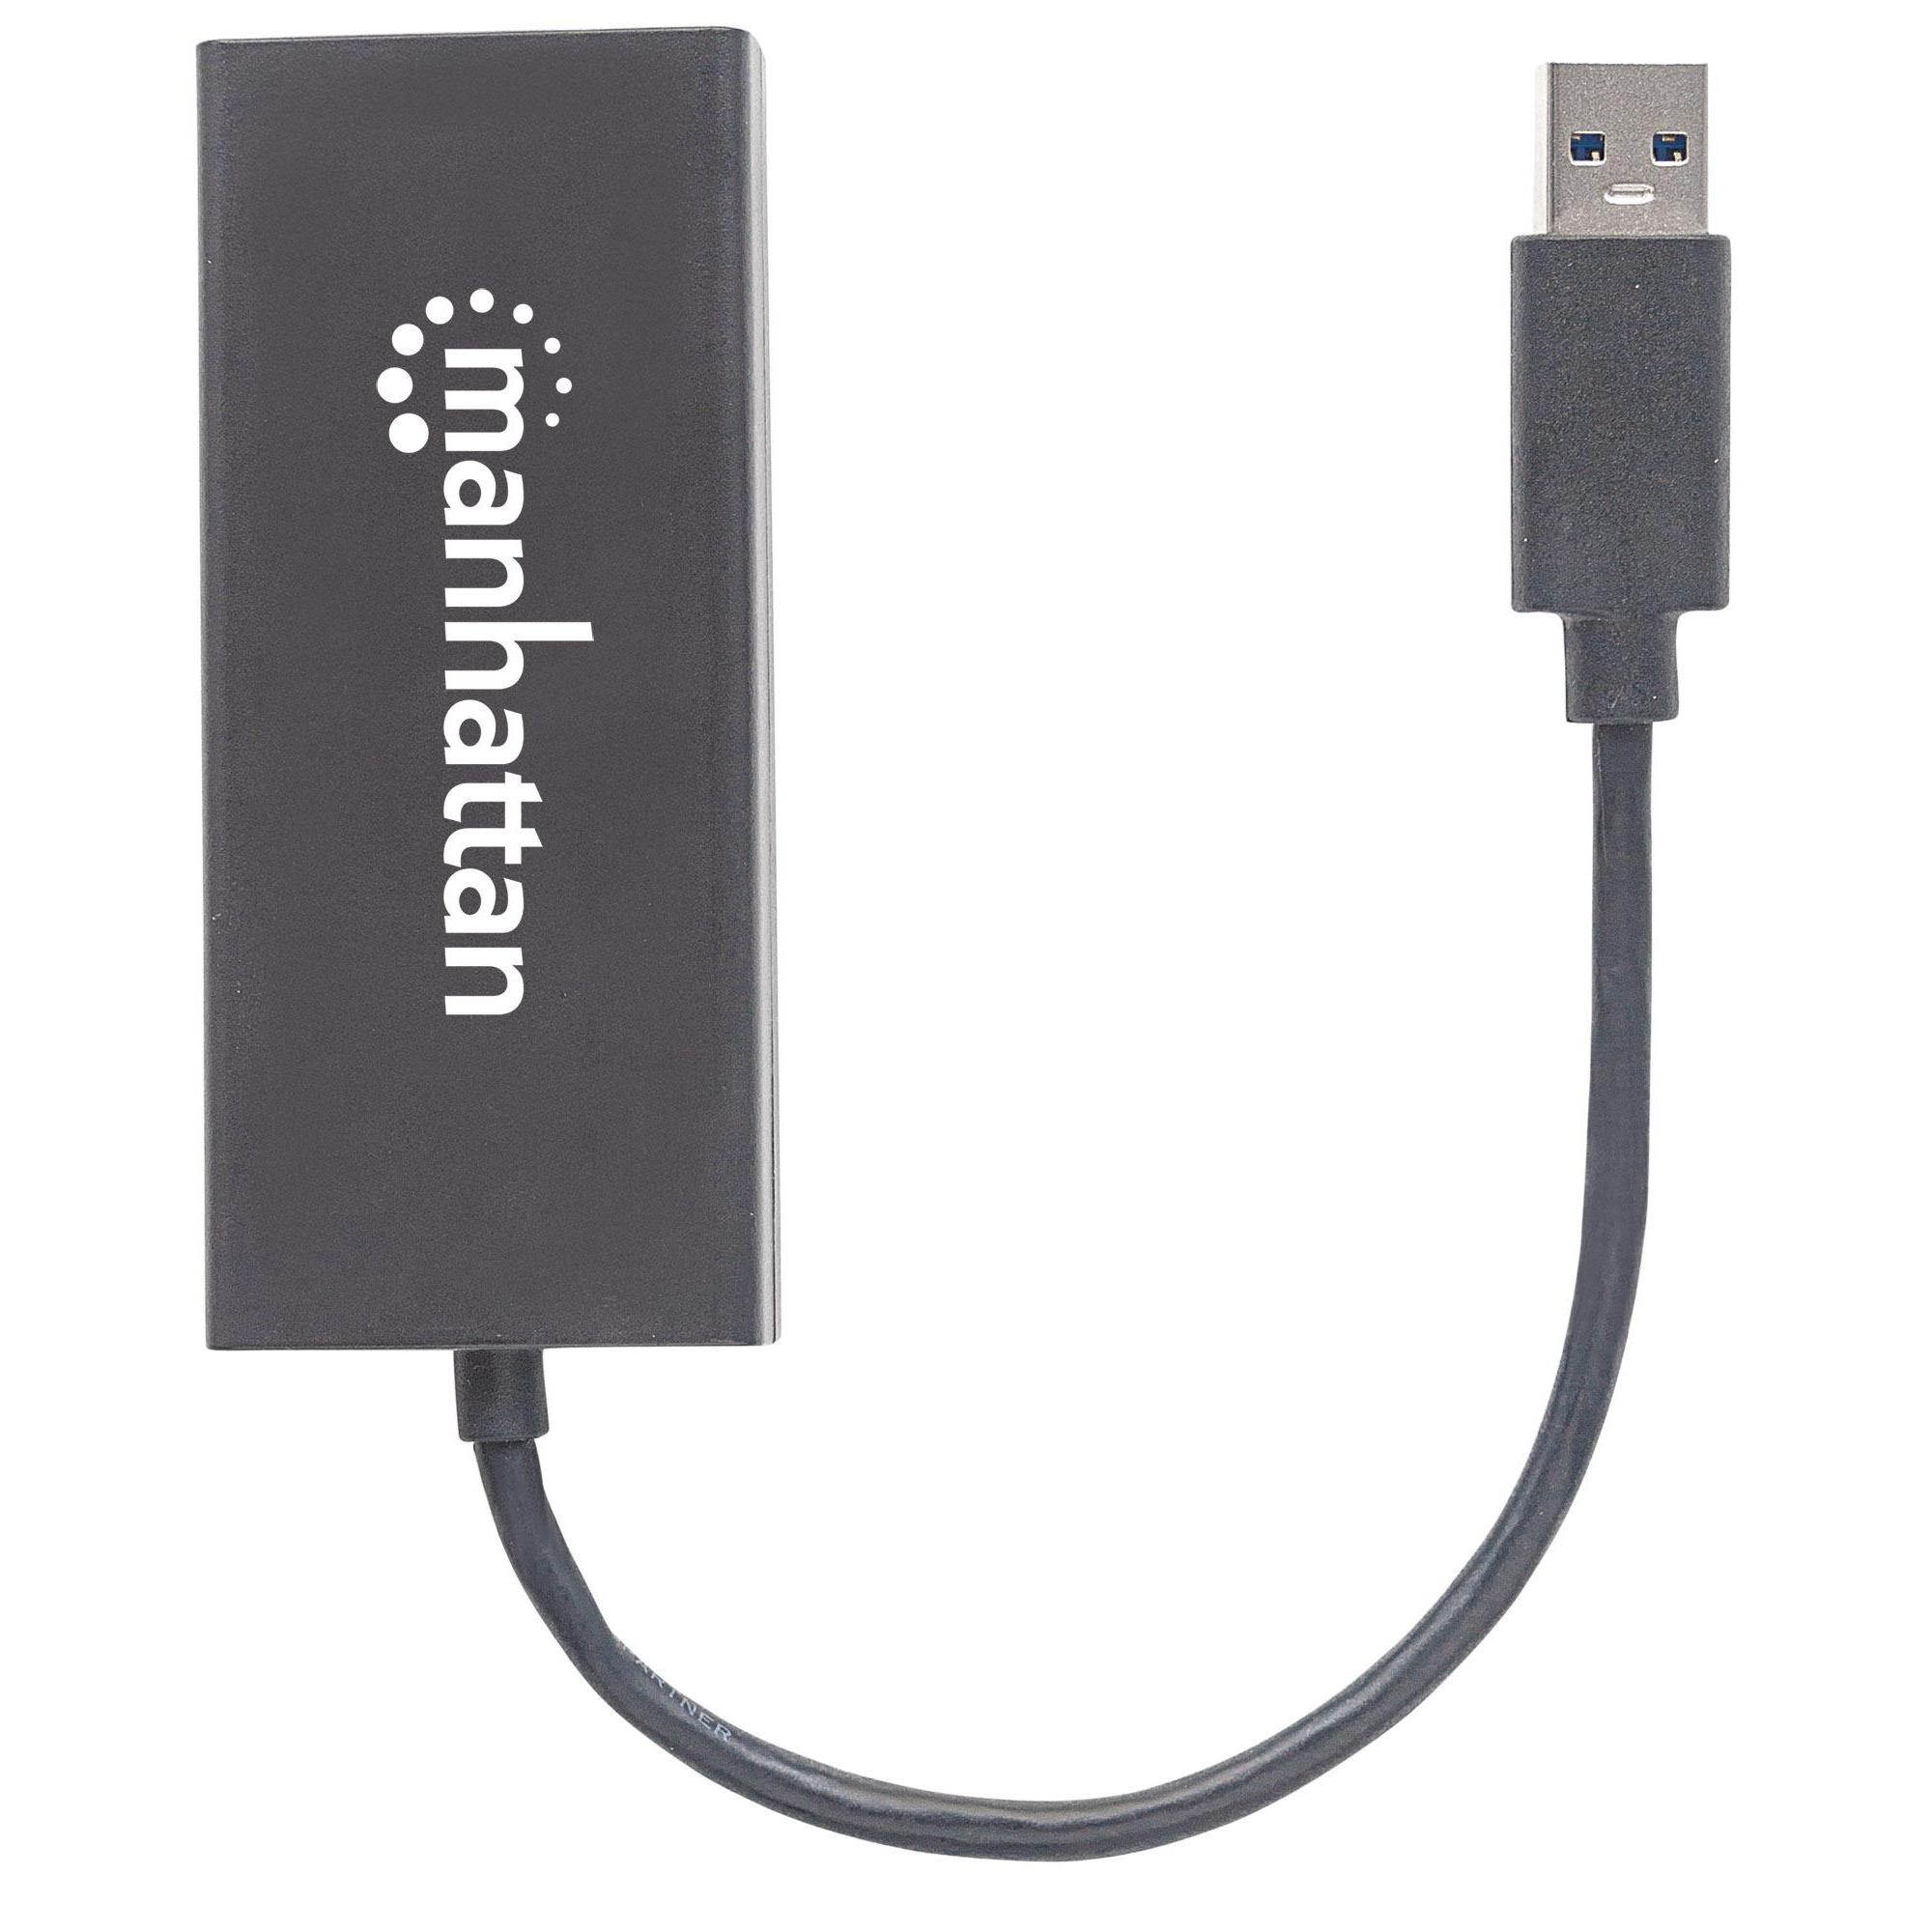 Convertitore da USB 3.0 a DP (Display port)